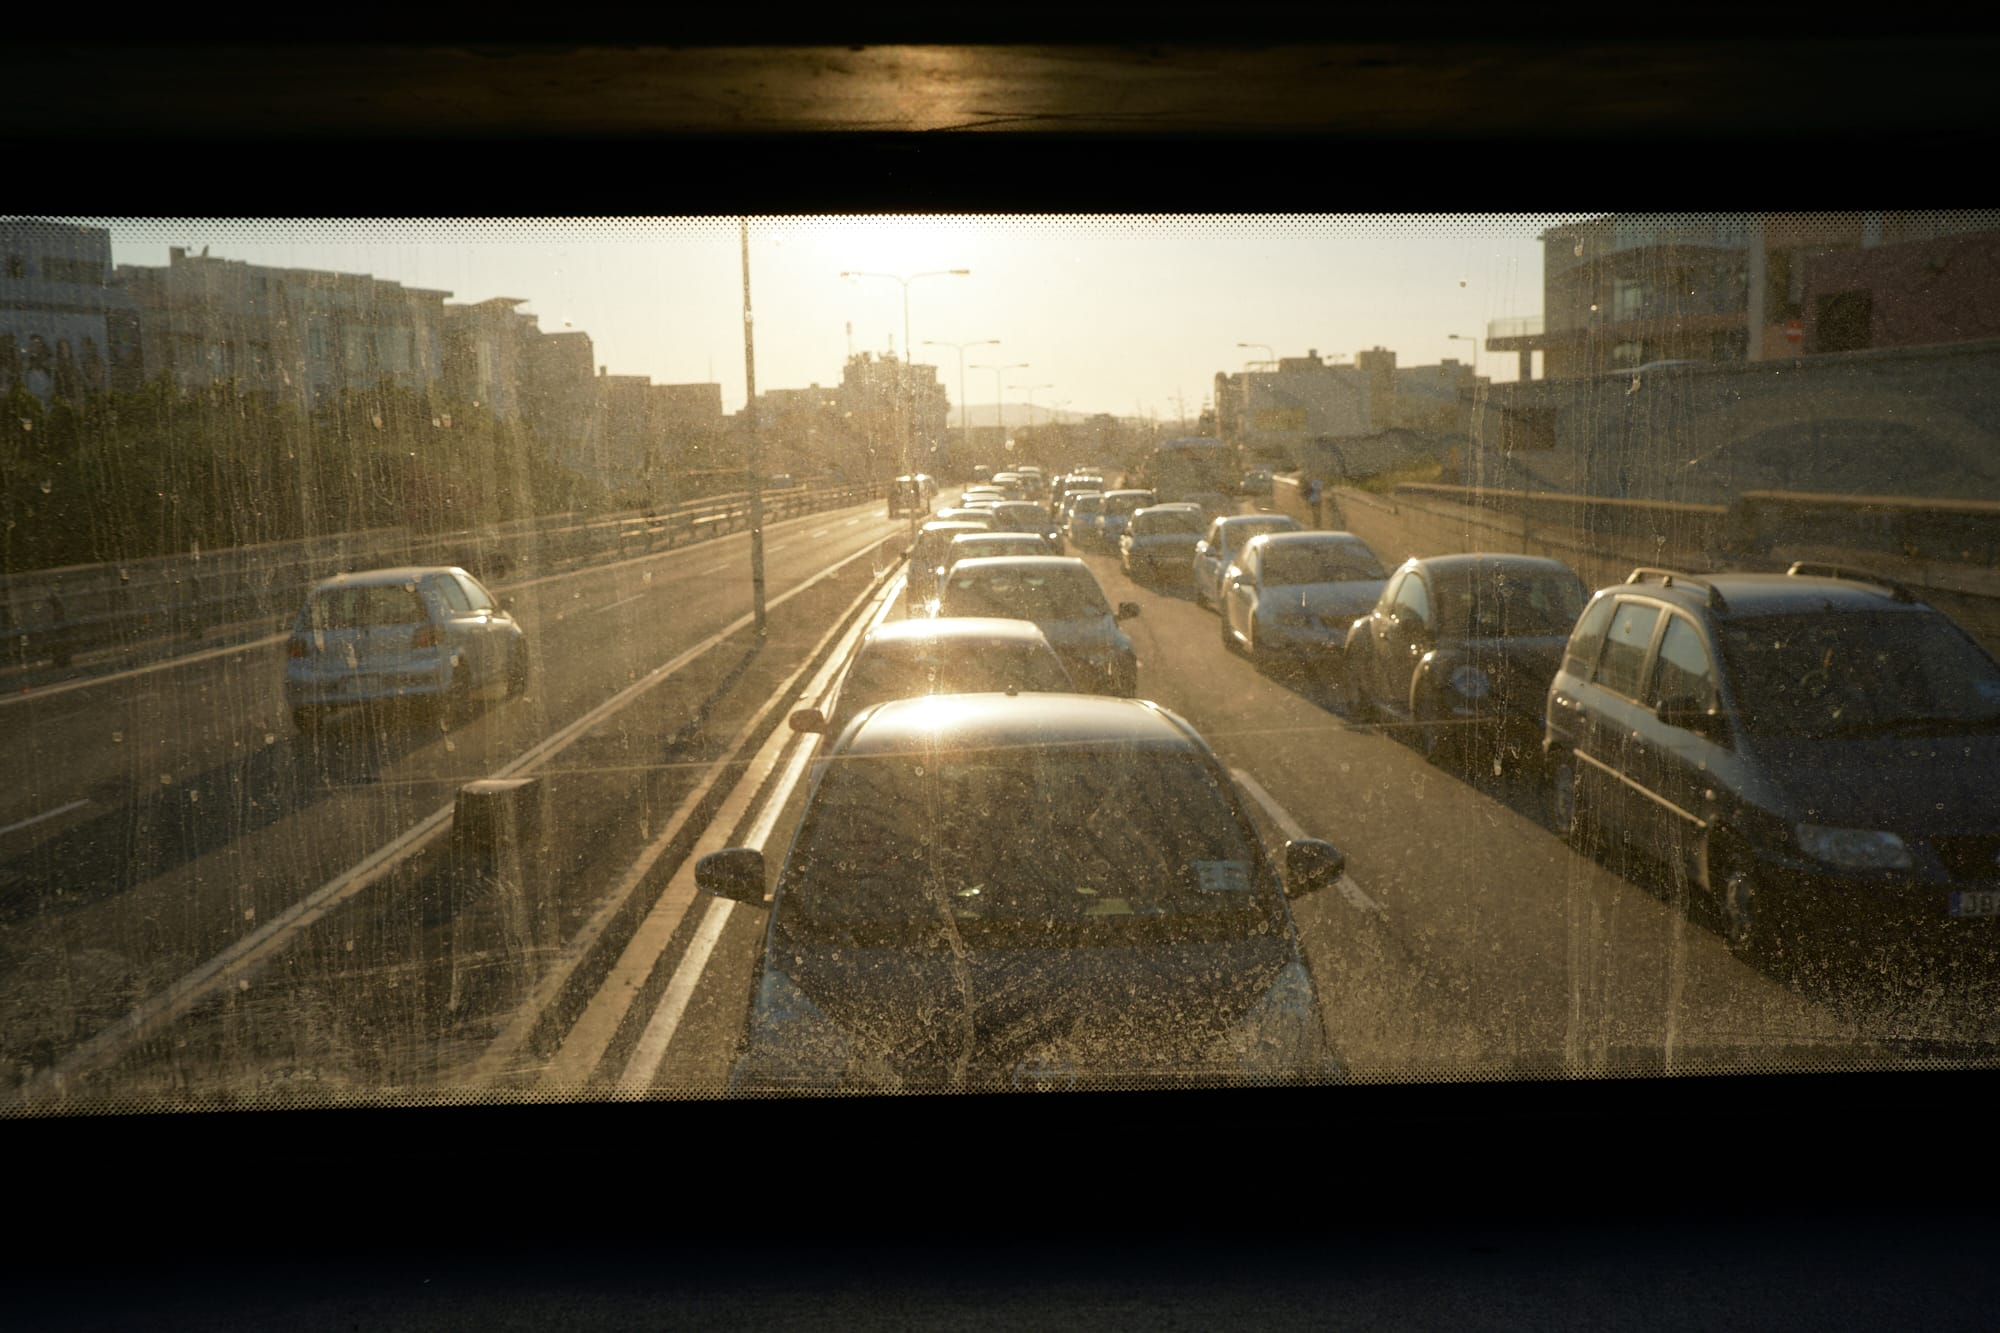 sun shining in the rear window of the bus from Ċirkewwa to Valletta